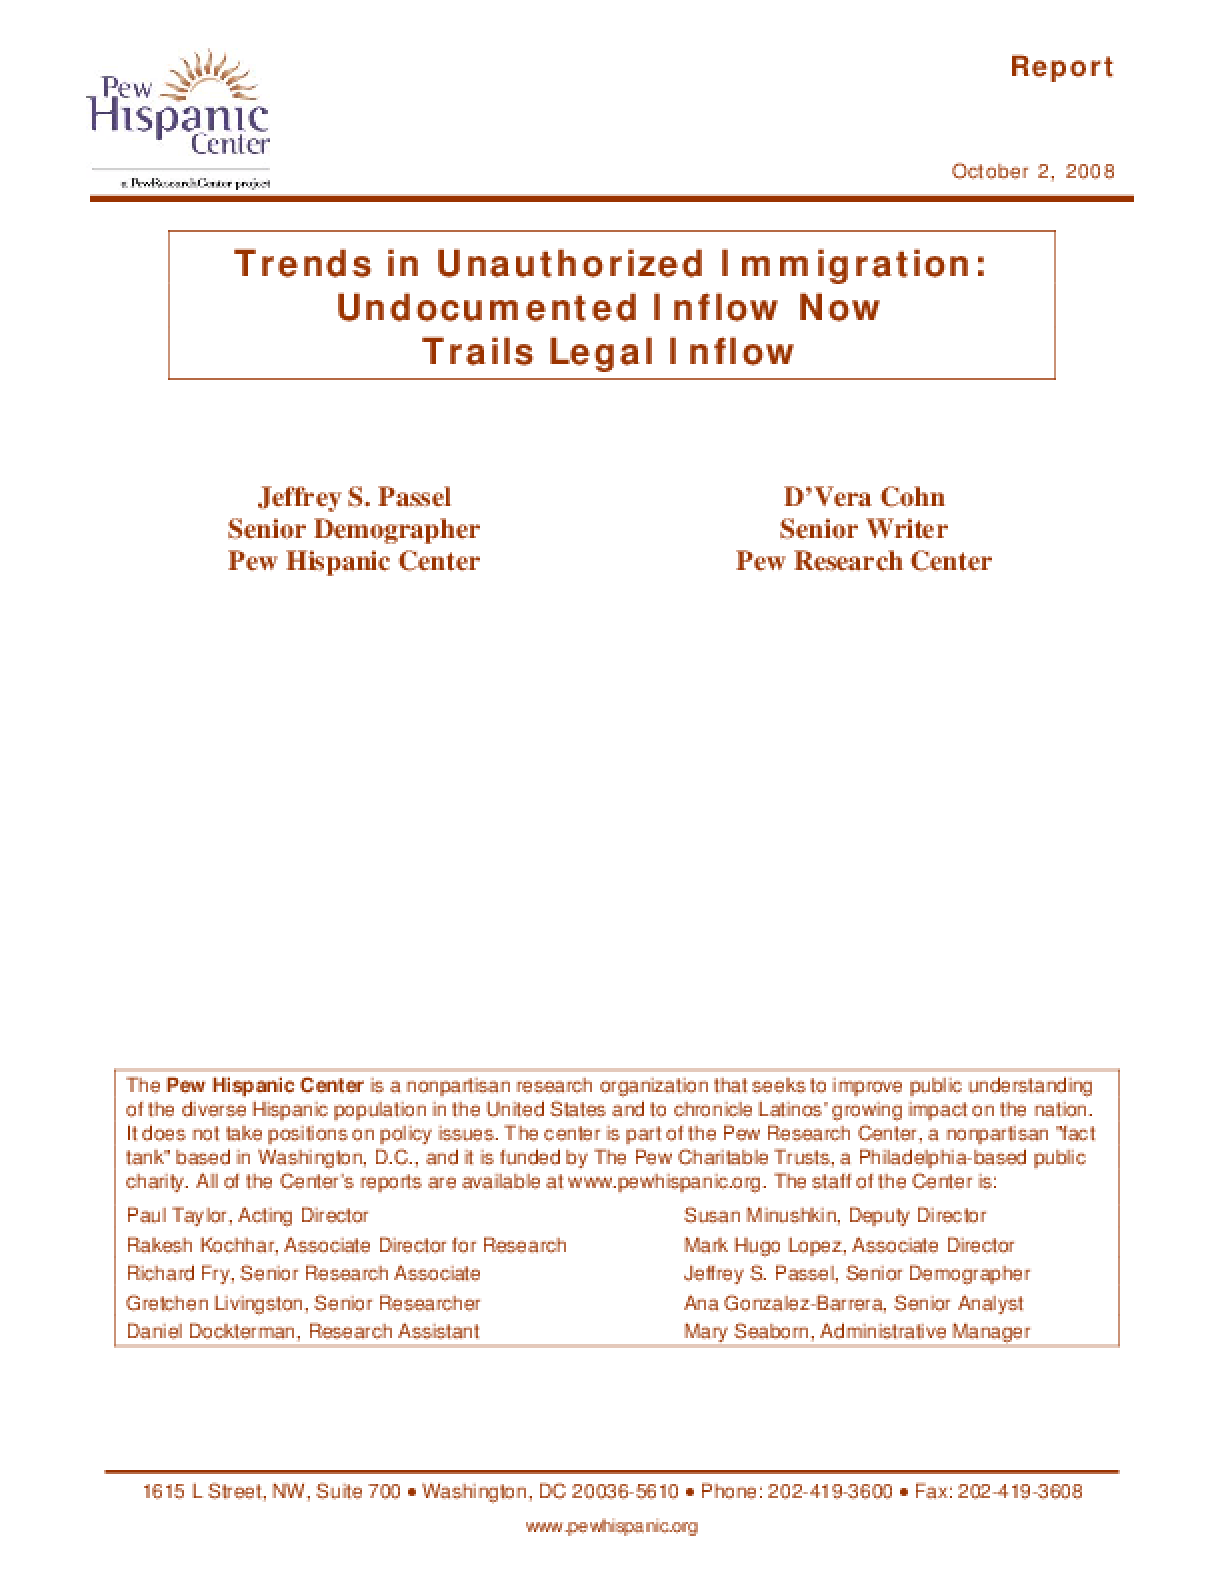 Trends in Unauthorized Immigration: Undocumented Inflow Now Trails Legal Inflow